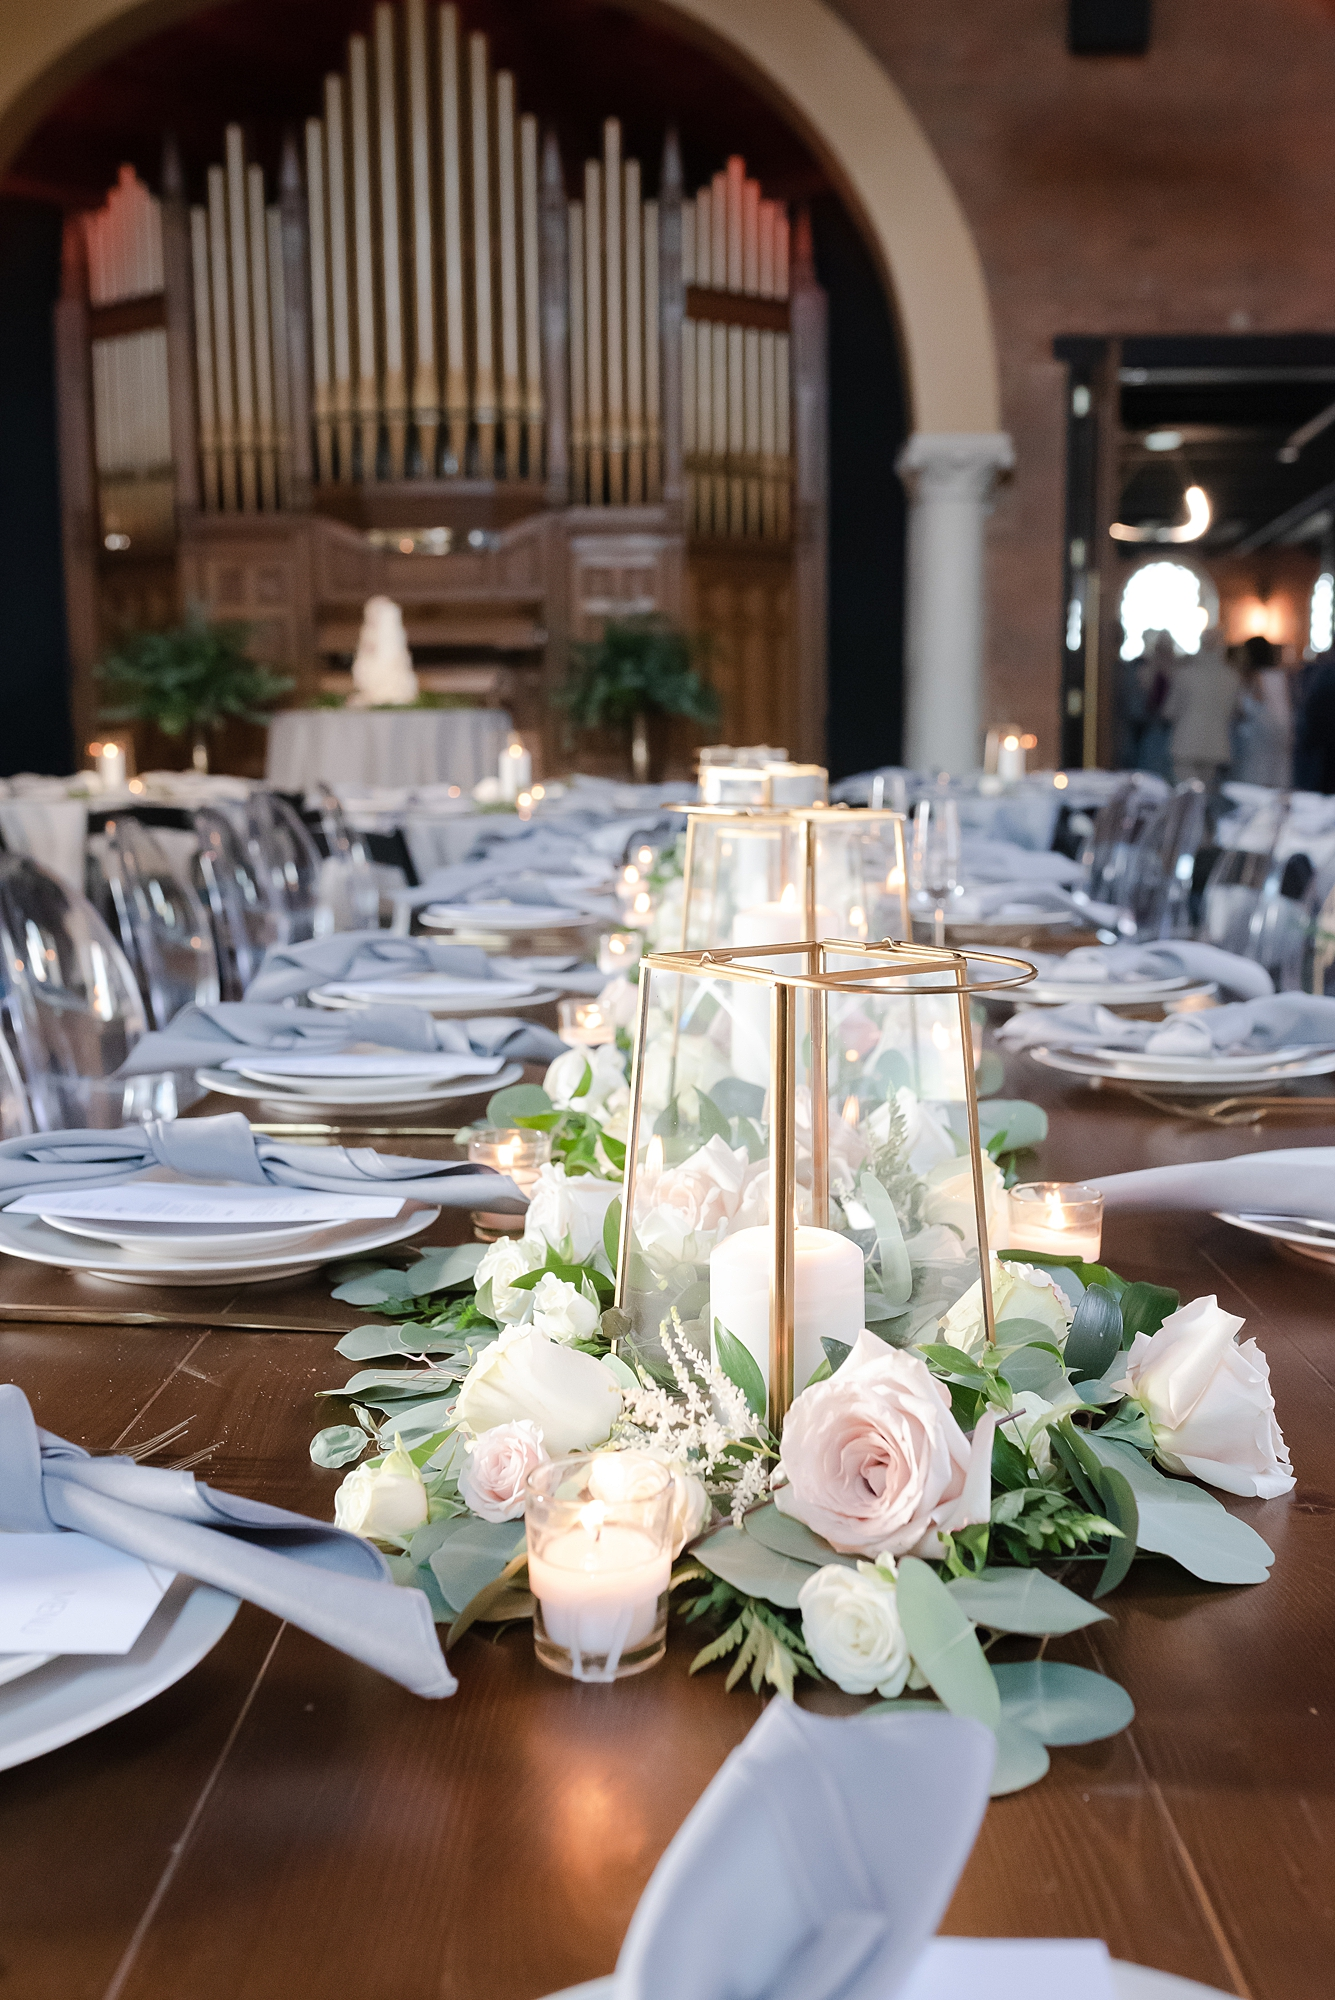 Lantern Wedding Centerpieces: Modern and Southern Wedding at the Clementine featured on Nashville Bride Guide